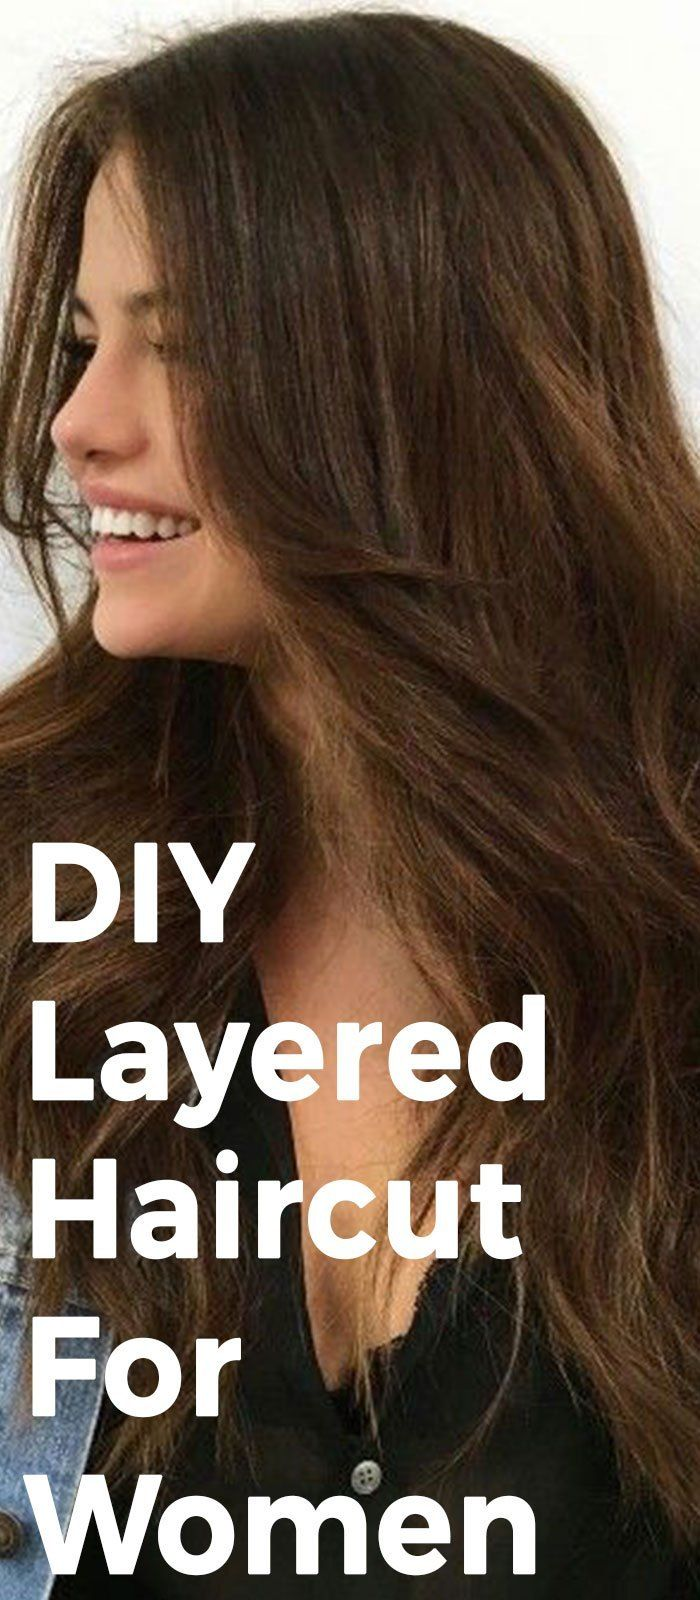 how to get the perfect layered hair according to your face